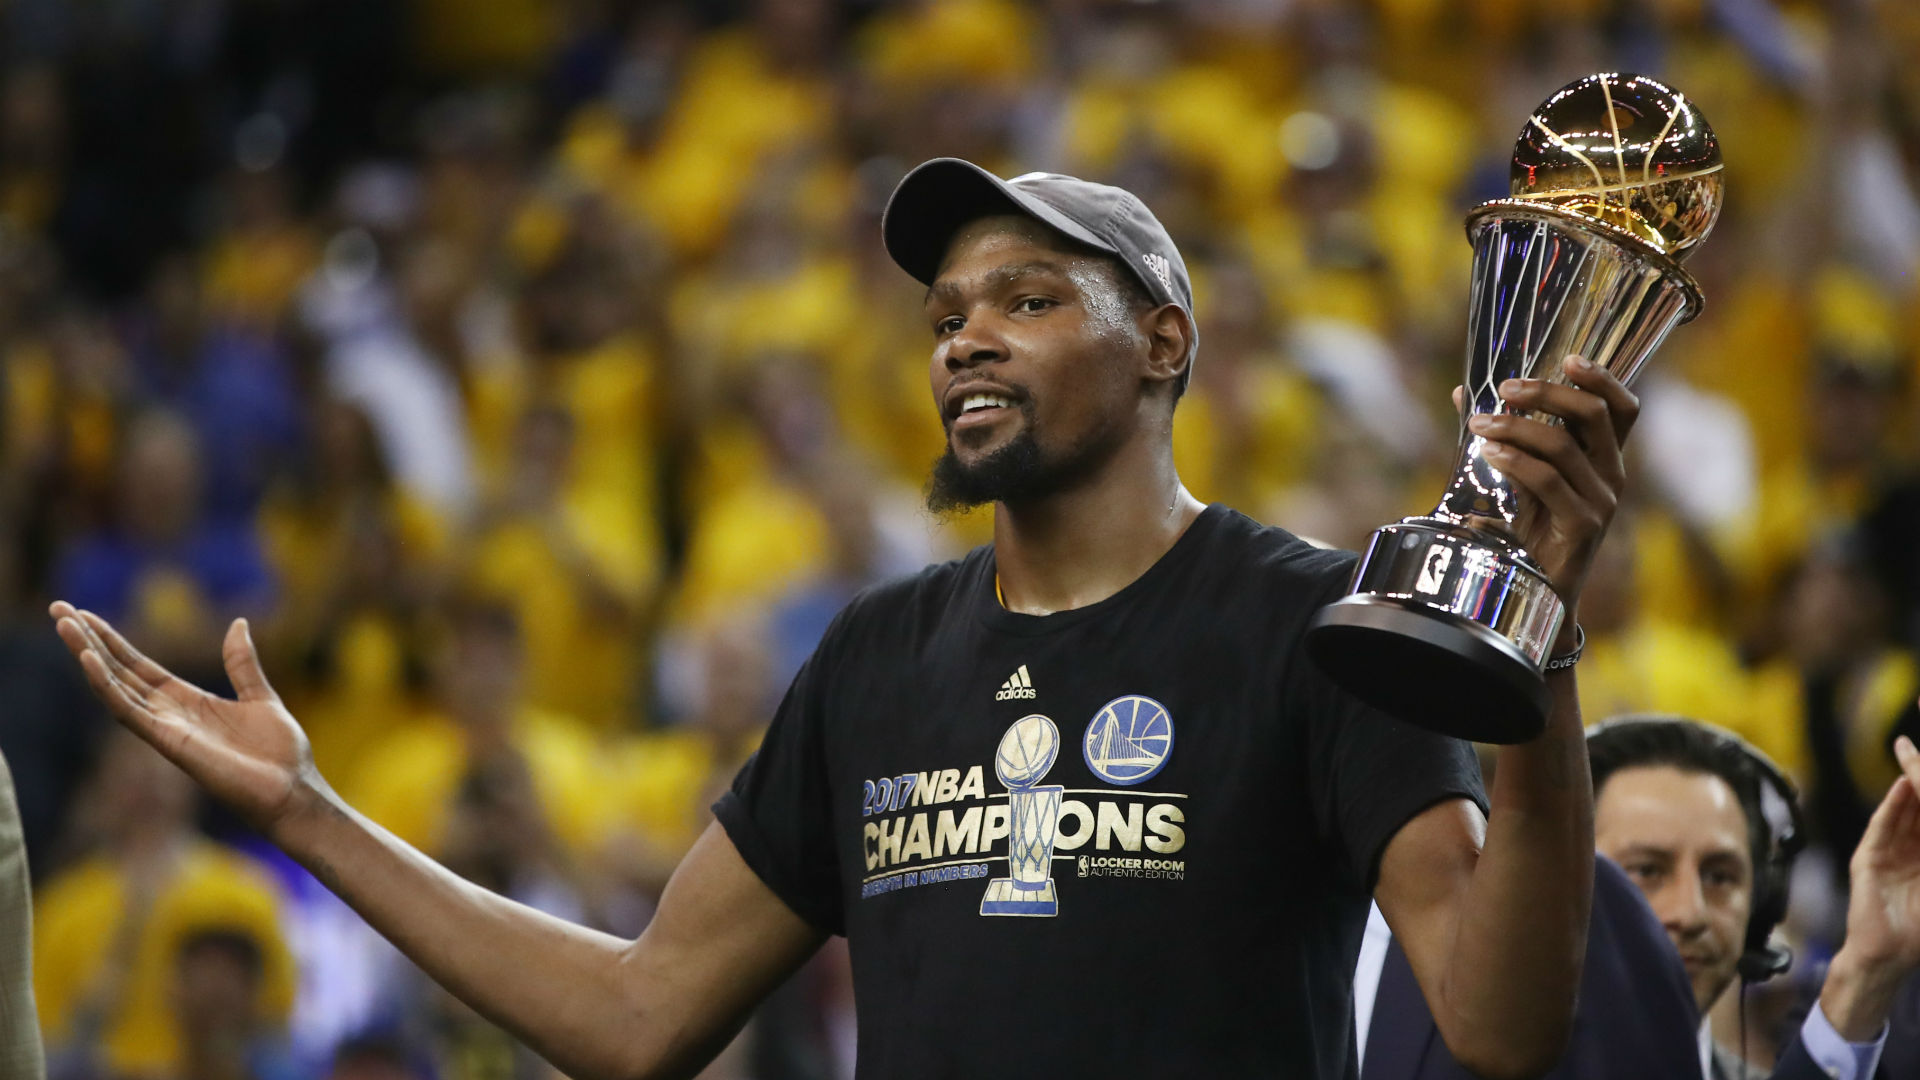 Nah Son: Golden State Warriors Reportedly Skip White House Visit